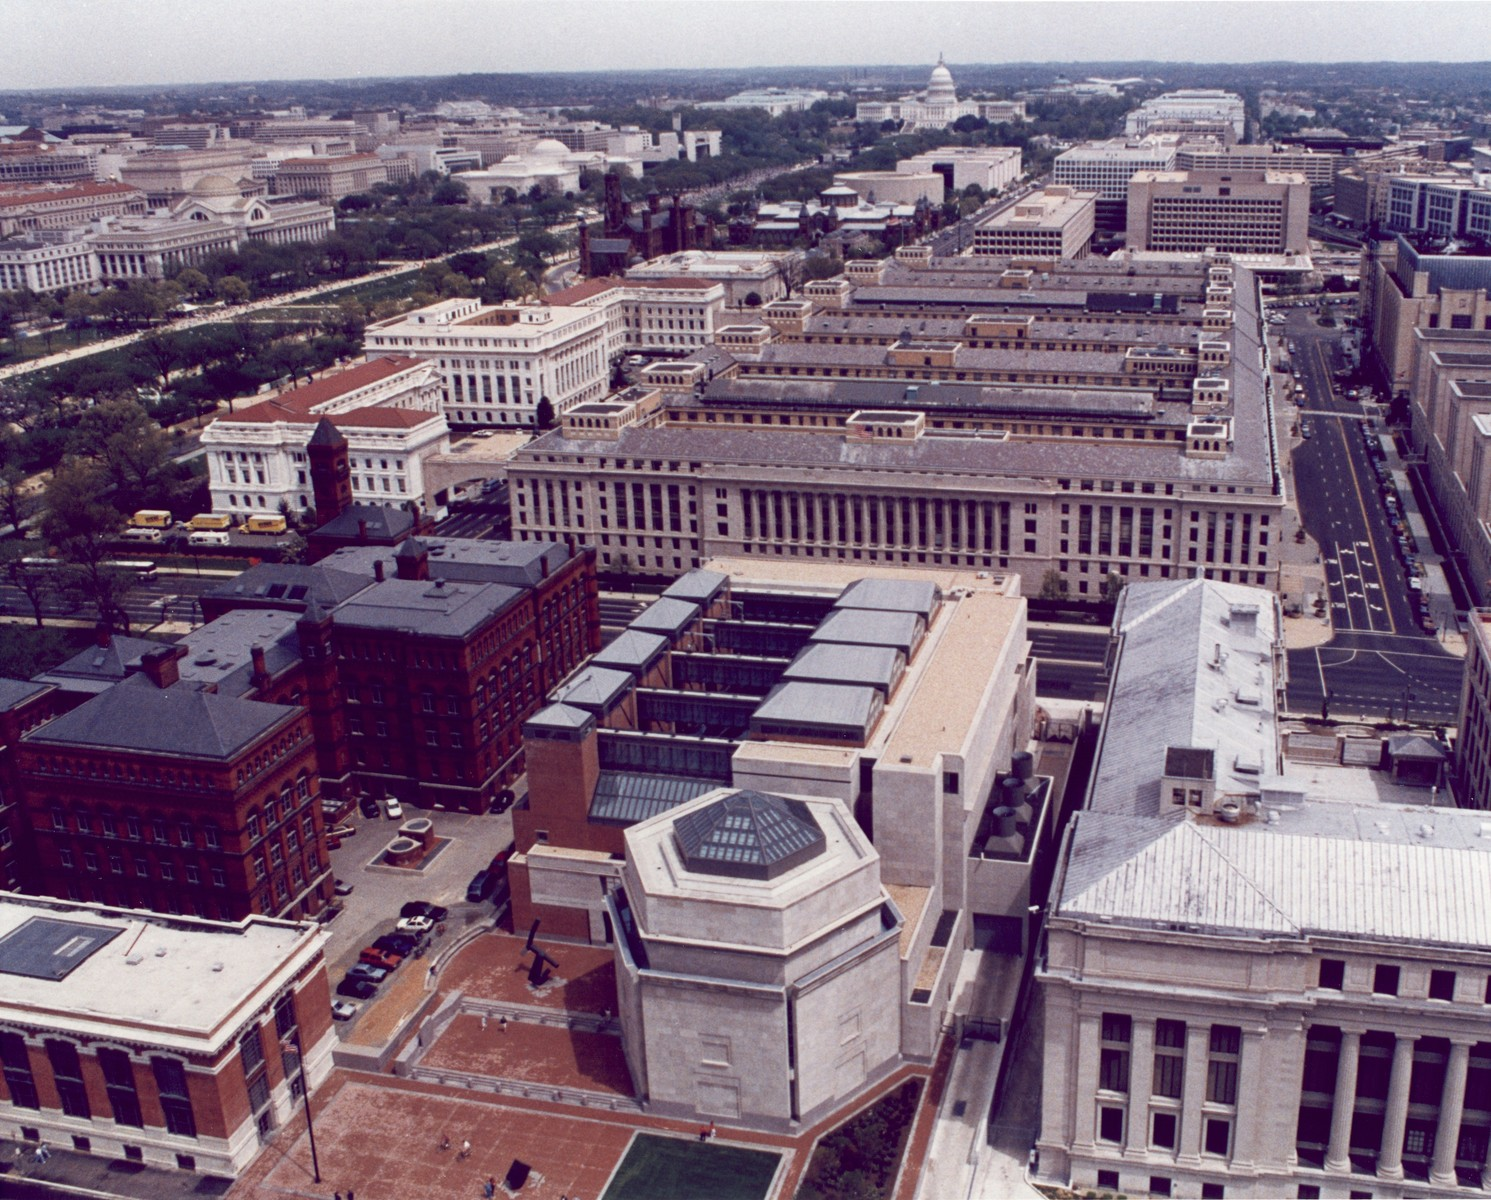 Aerial view of the U.S. Holocaust Memorial Museum looking from 15th Street in the direction of the U.S. Capitol.